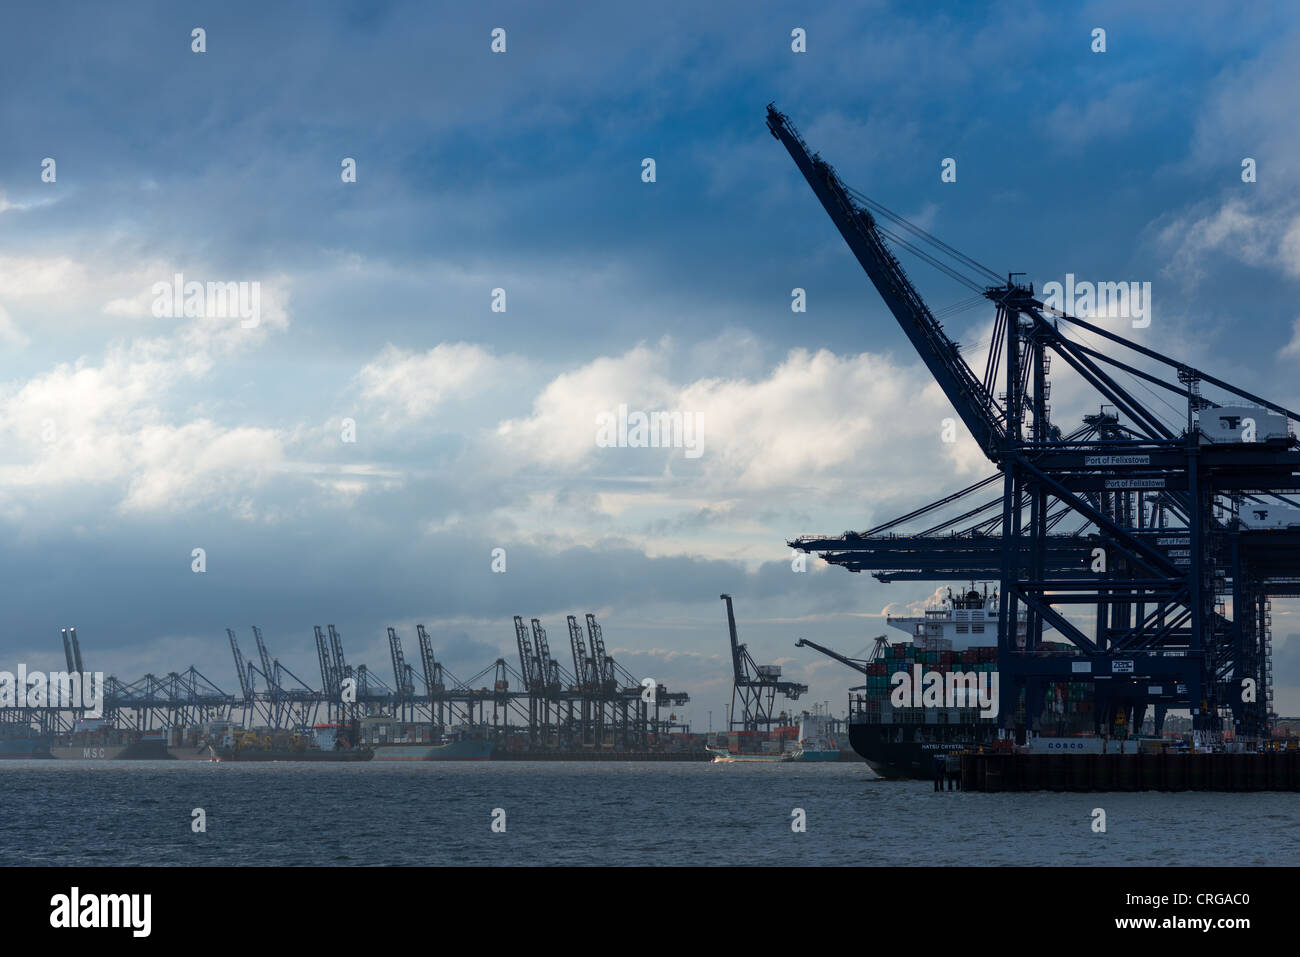 Felixstowe Docks and Container port, Suffolk, England. - Stock Image